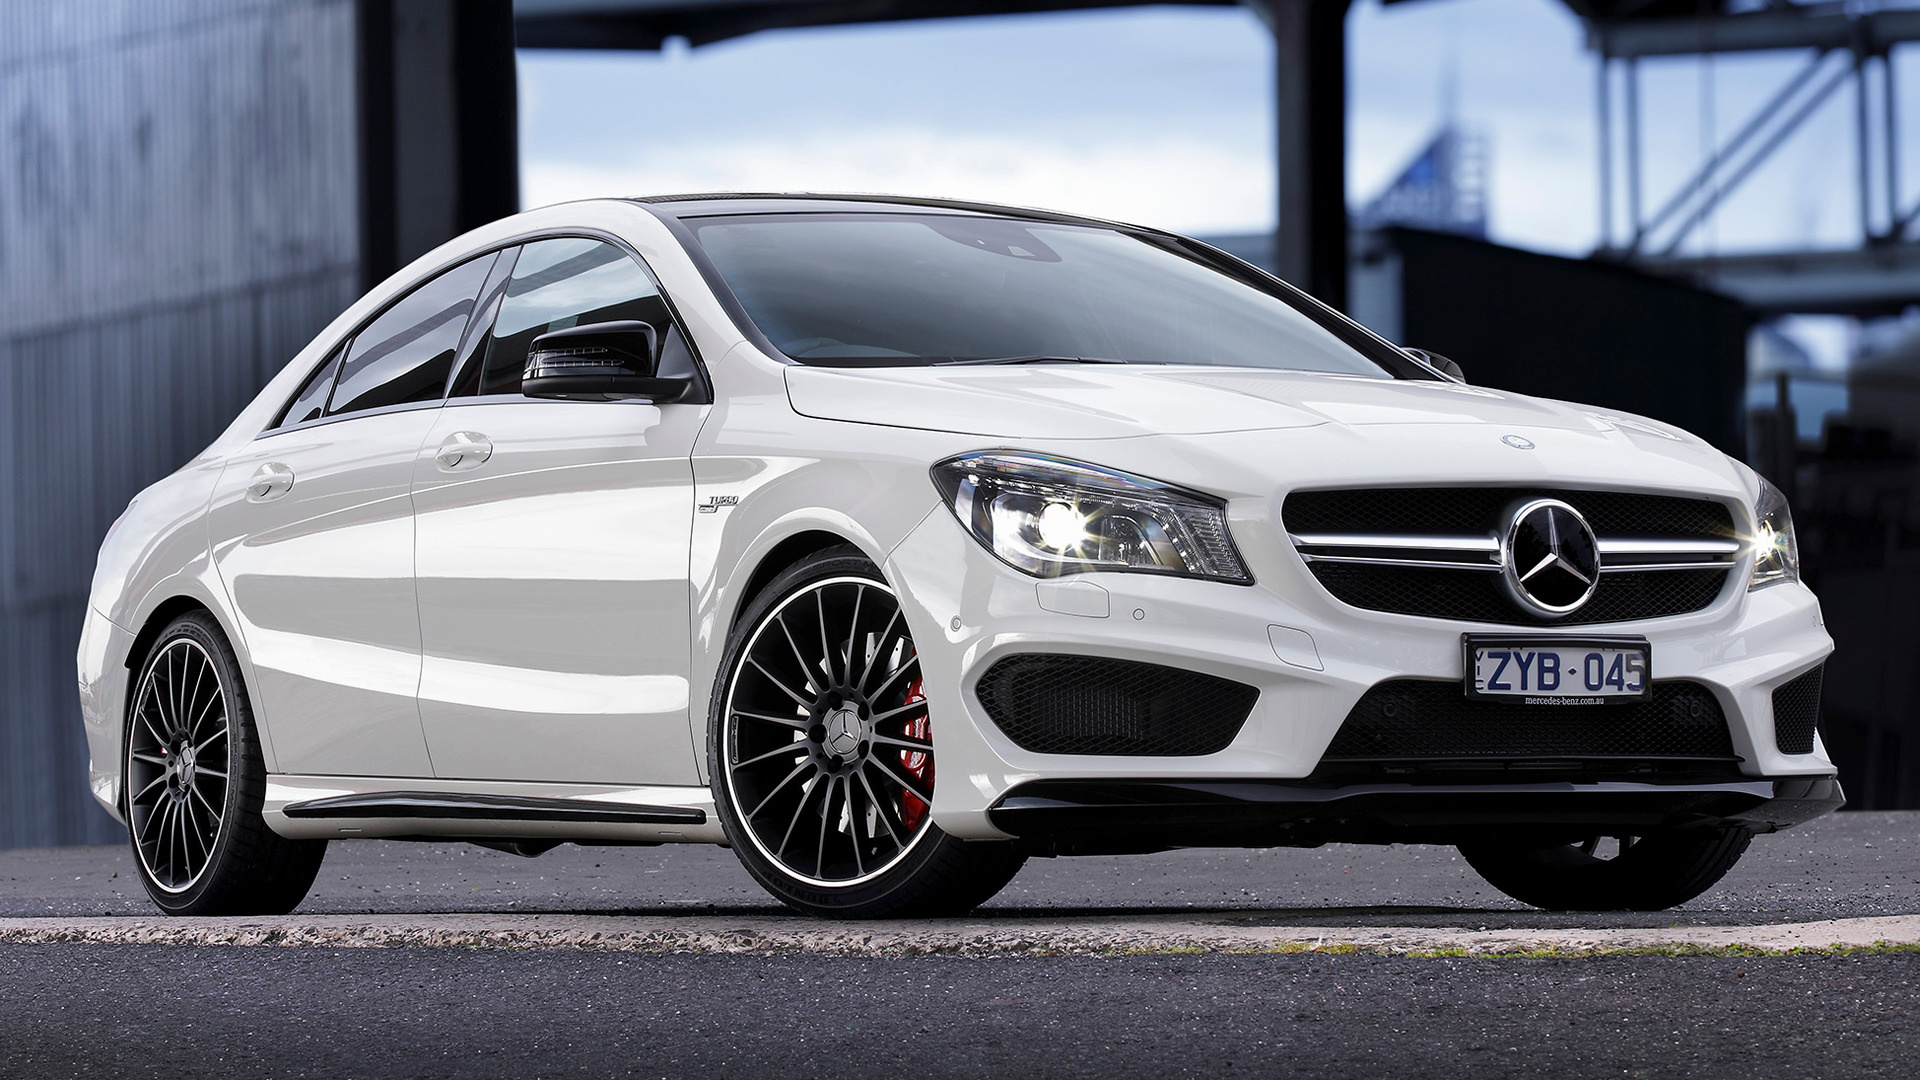 2013 mercedes benz cla 45 amg au wallpapers and hd. Black Bedroom Furniture Sets. Home Design Ideas